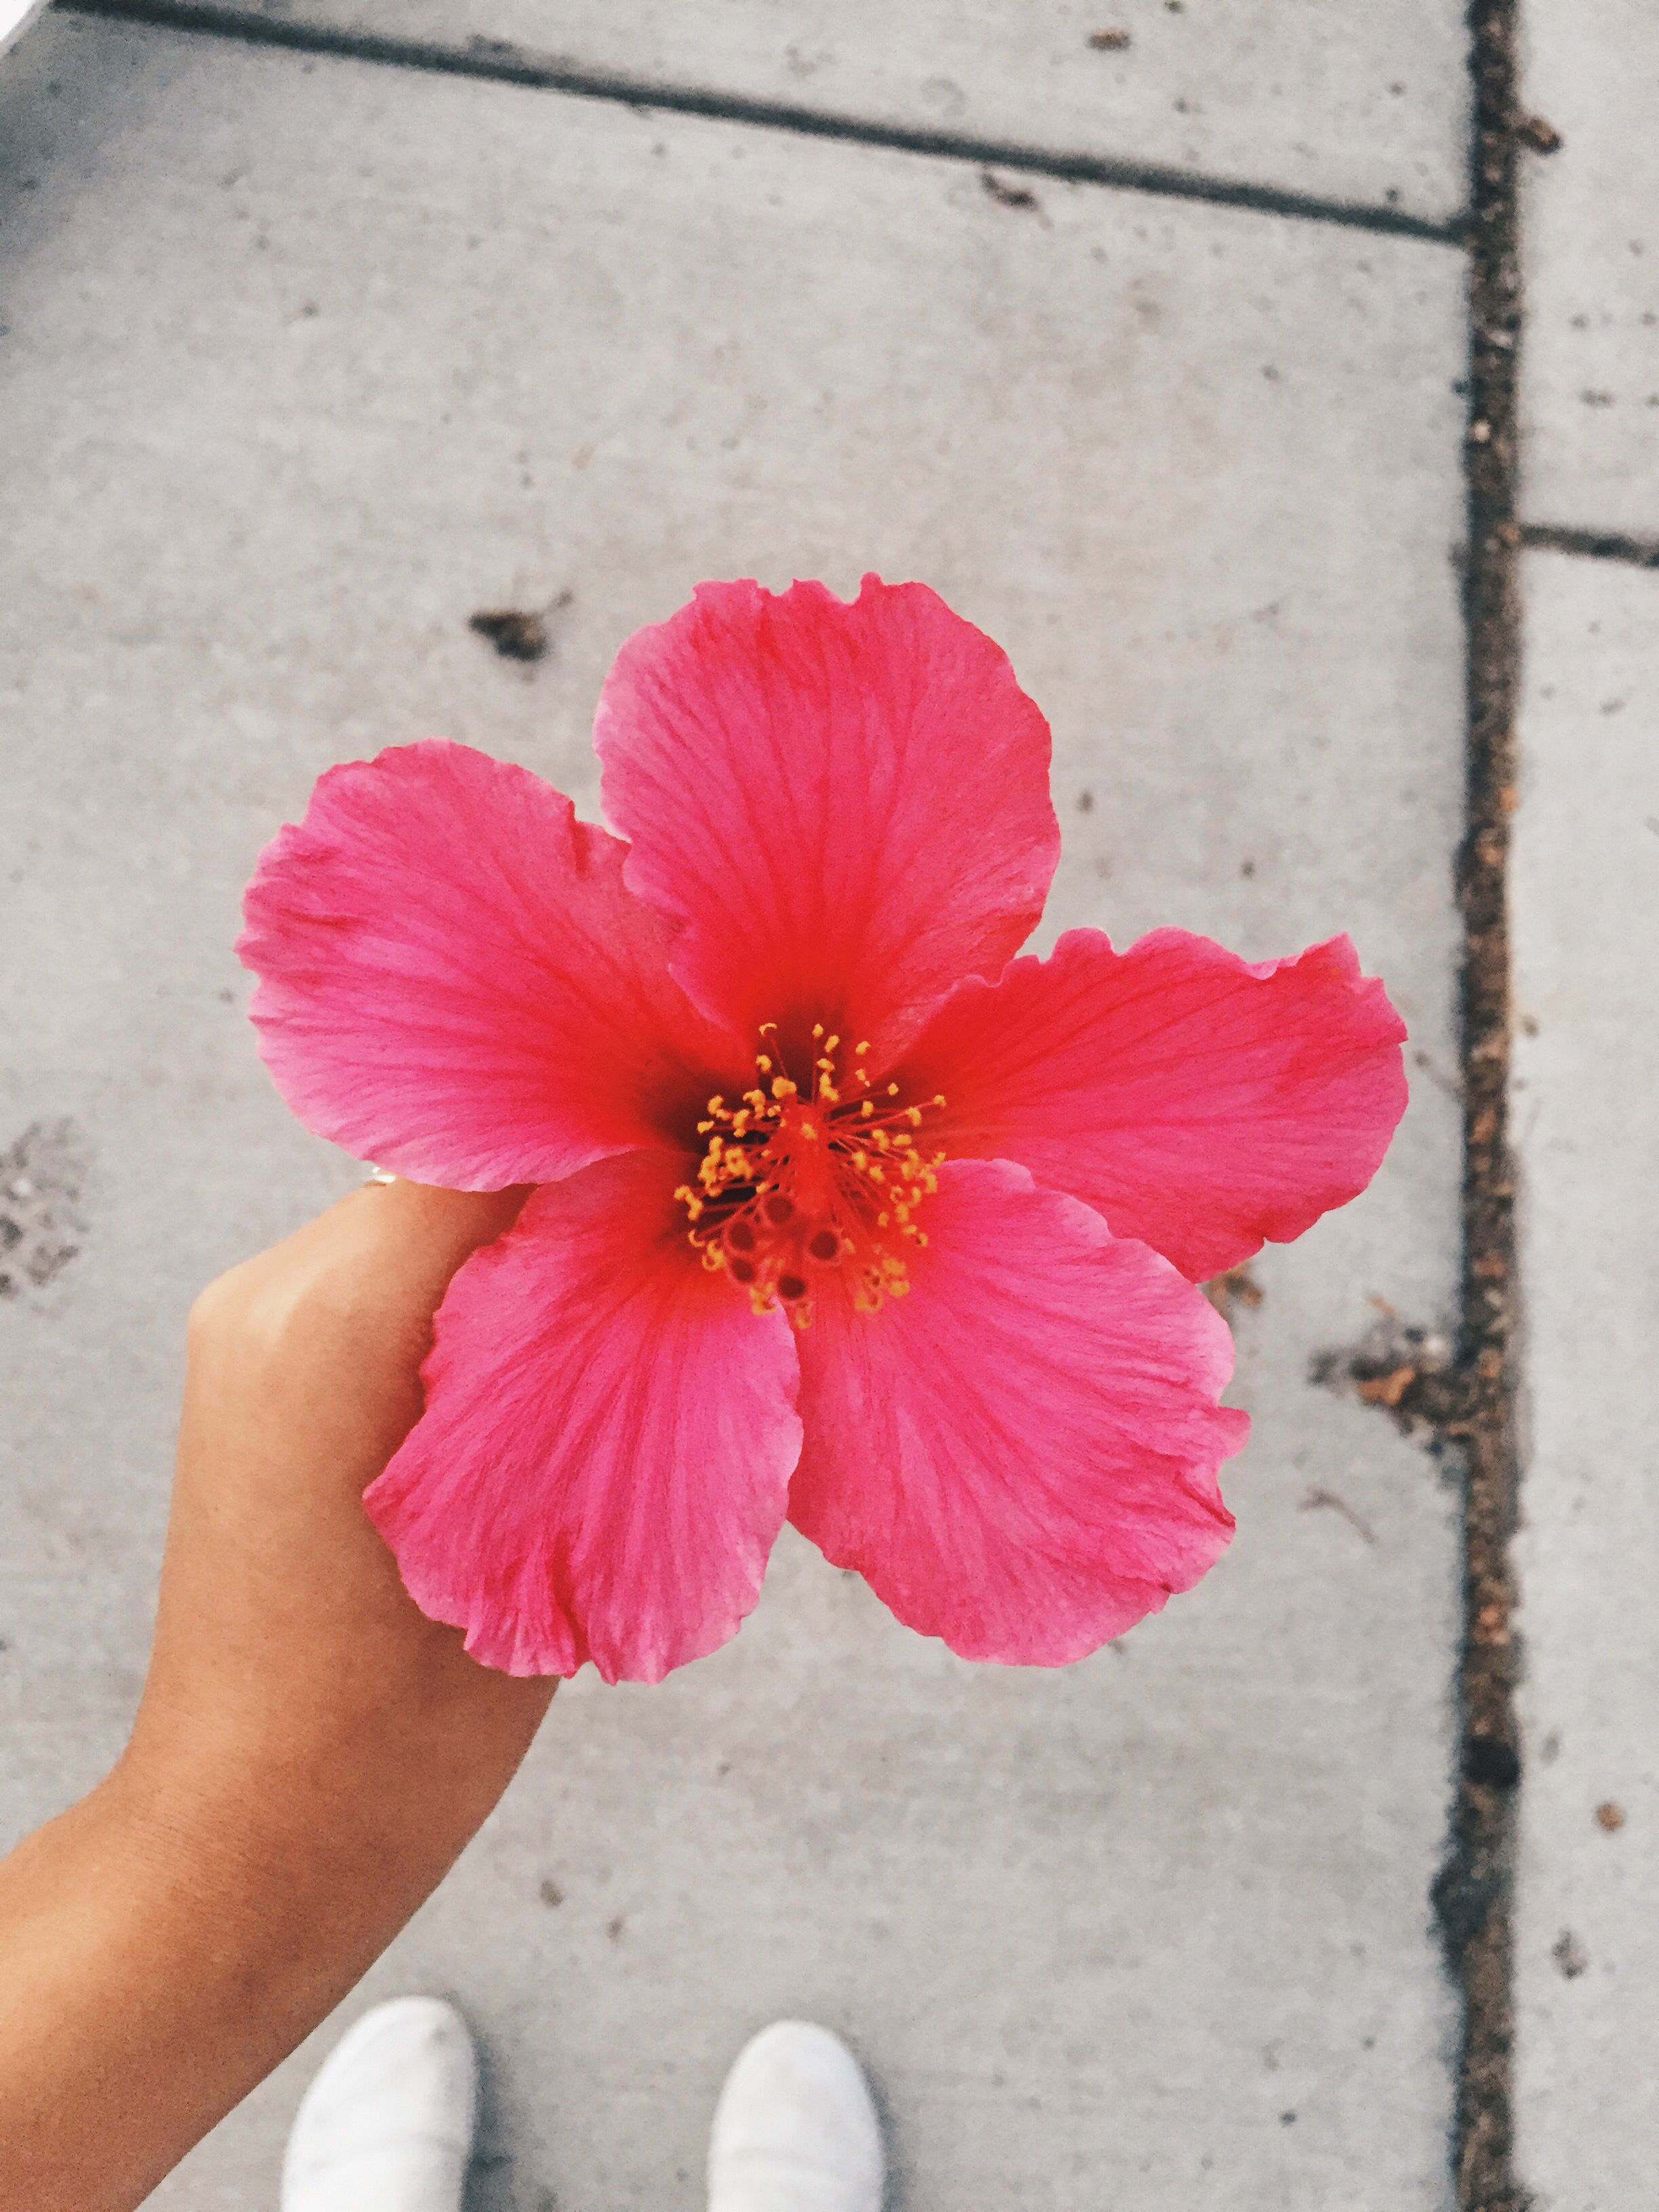 Island Aesthetic Tumblr Hawaii Flower Hibiscus Aesthetic